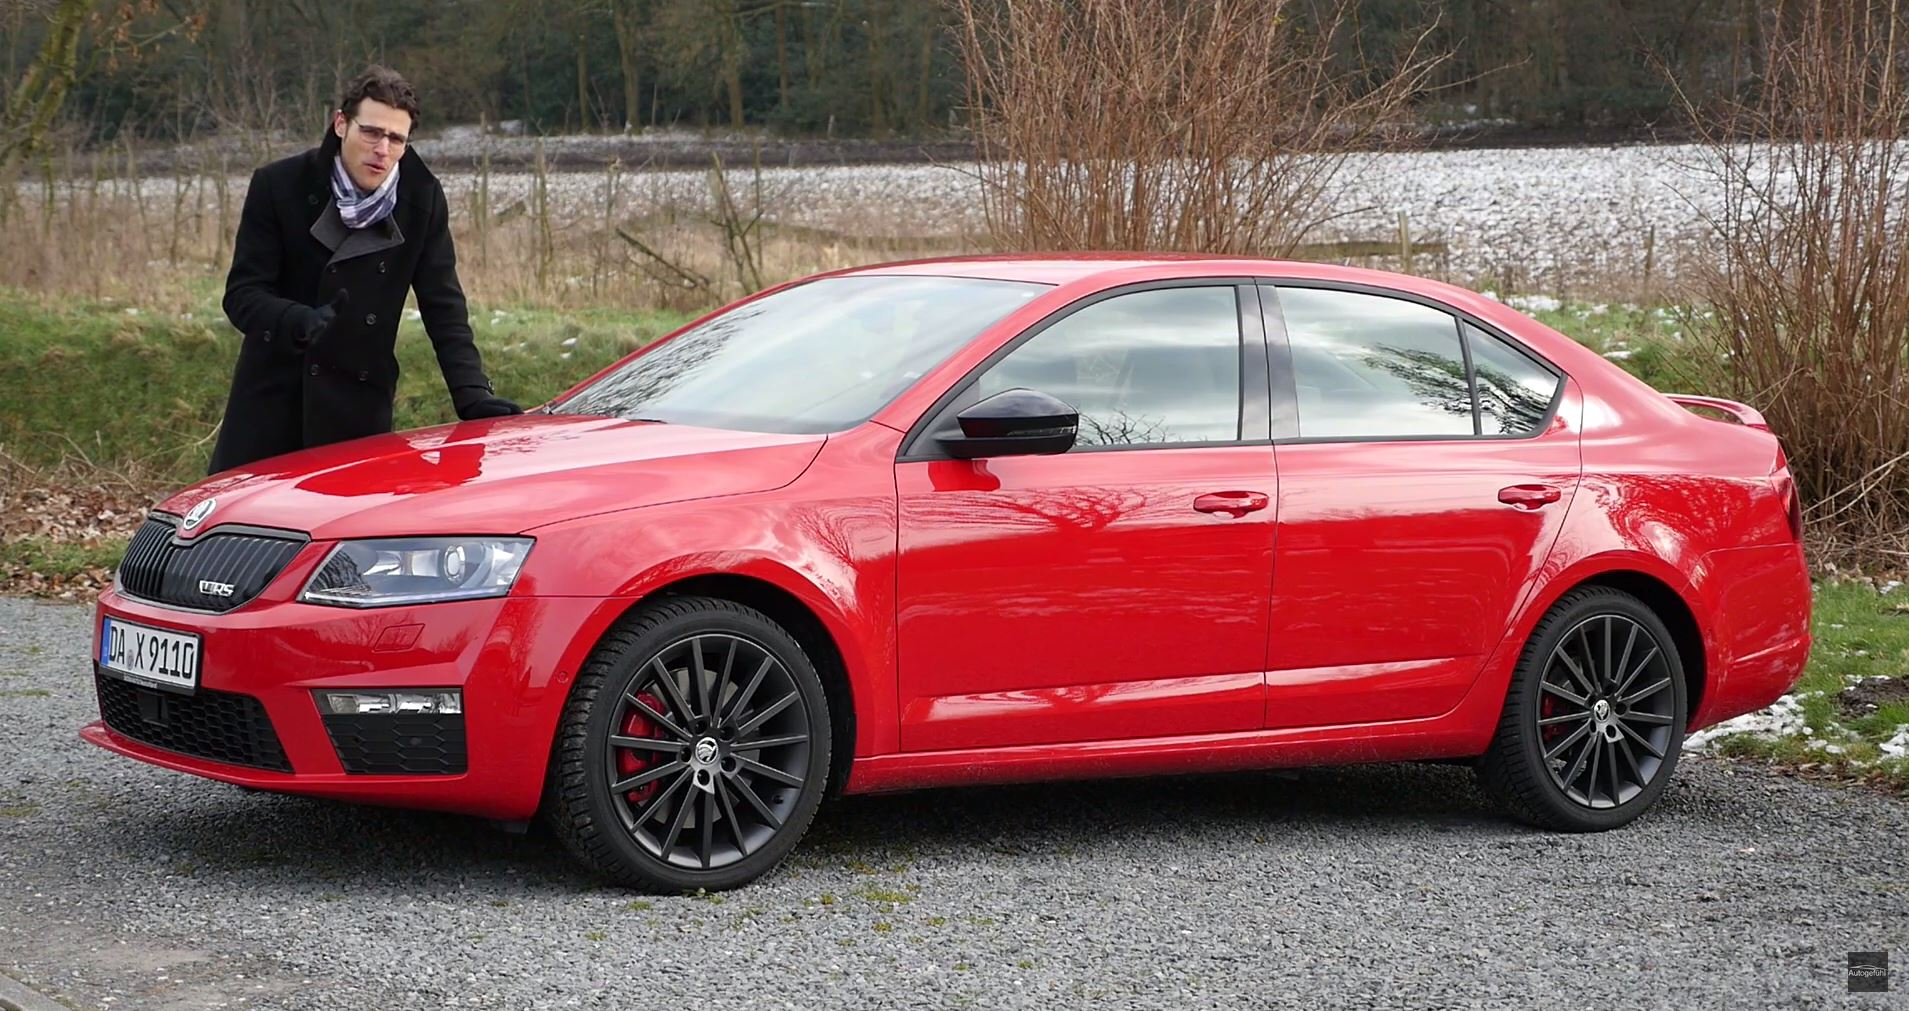 skoda octavia rs 230 review details feature rich yet practical sedan autoevolution. Black Bedroom Furniture Sets. Home Design Ideas